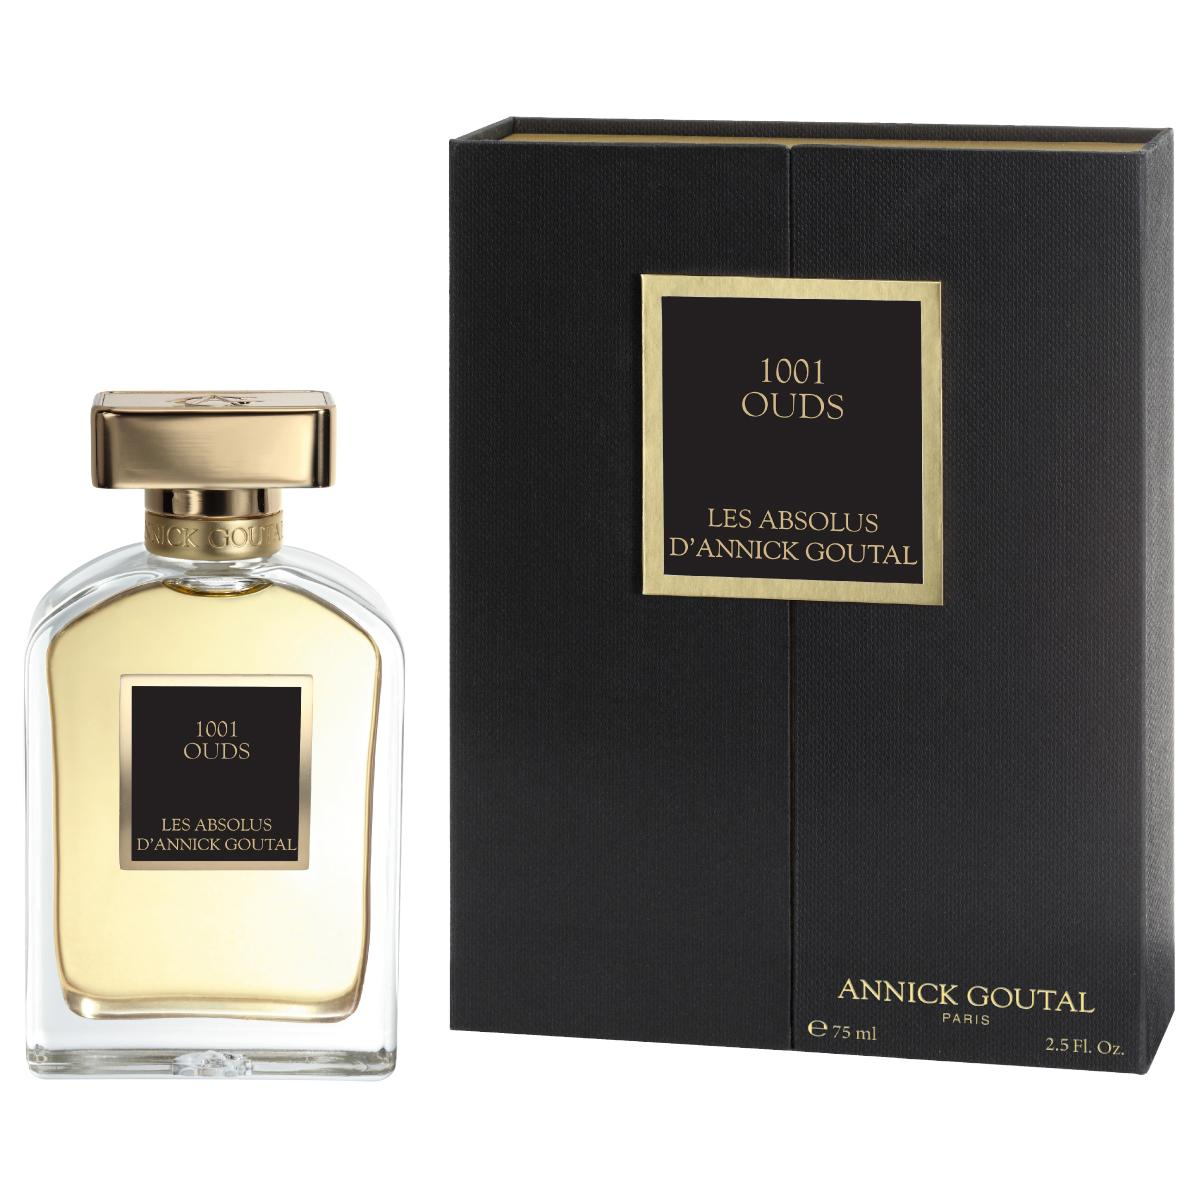 annick_goutal_1001_ouds